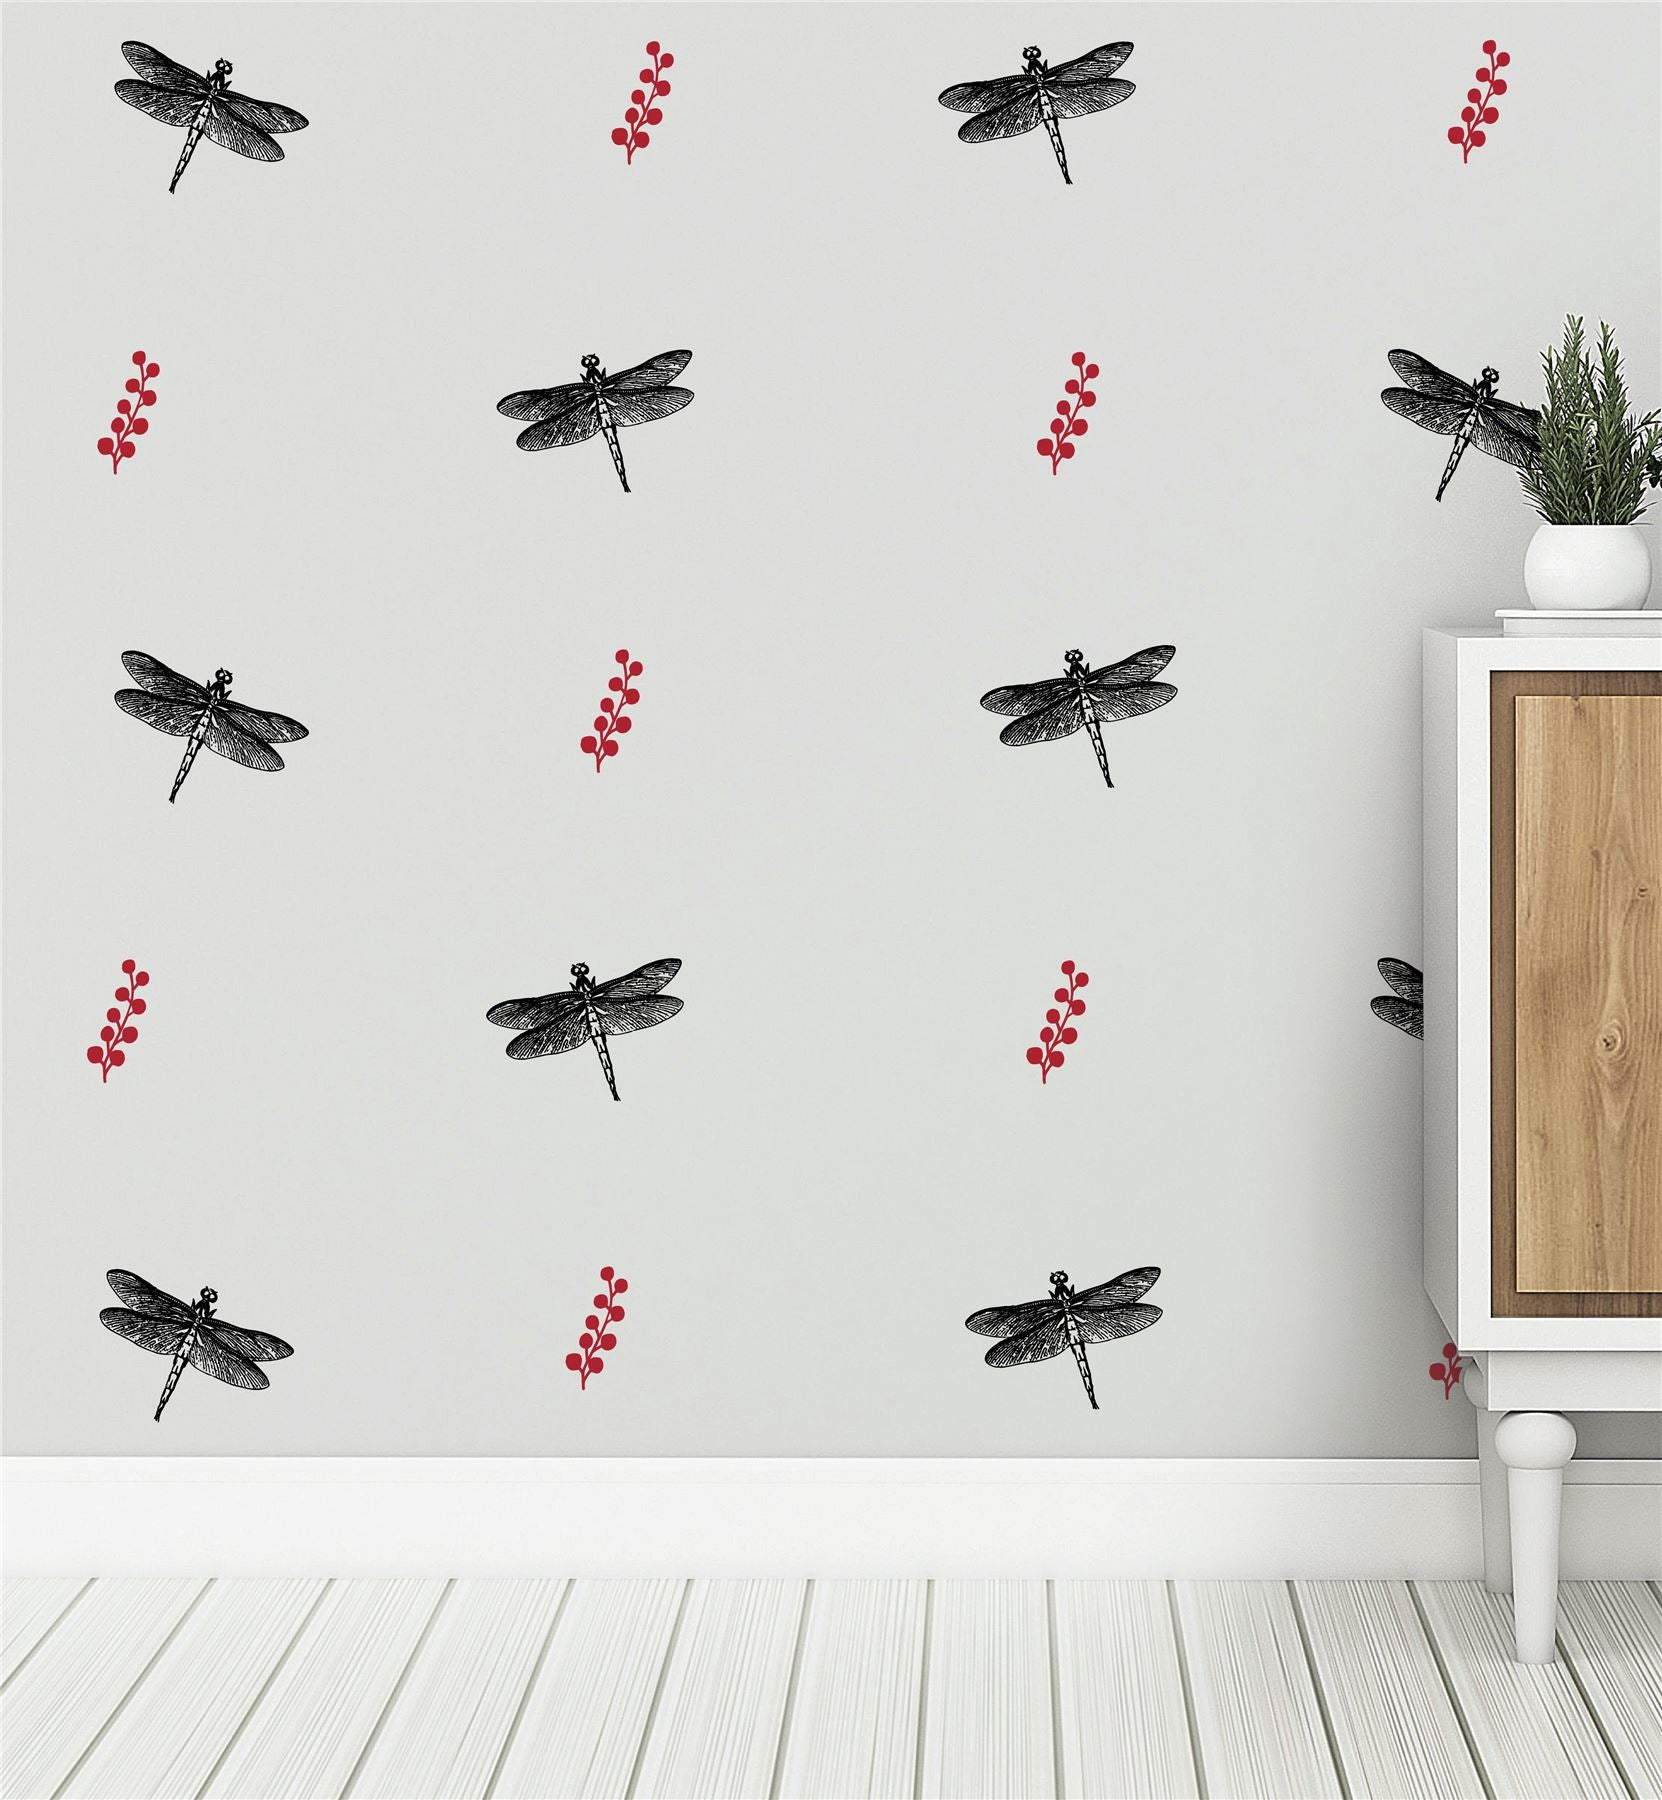 Dragonflys And Berries (Collection Of 22) Wall Sticker Decal